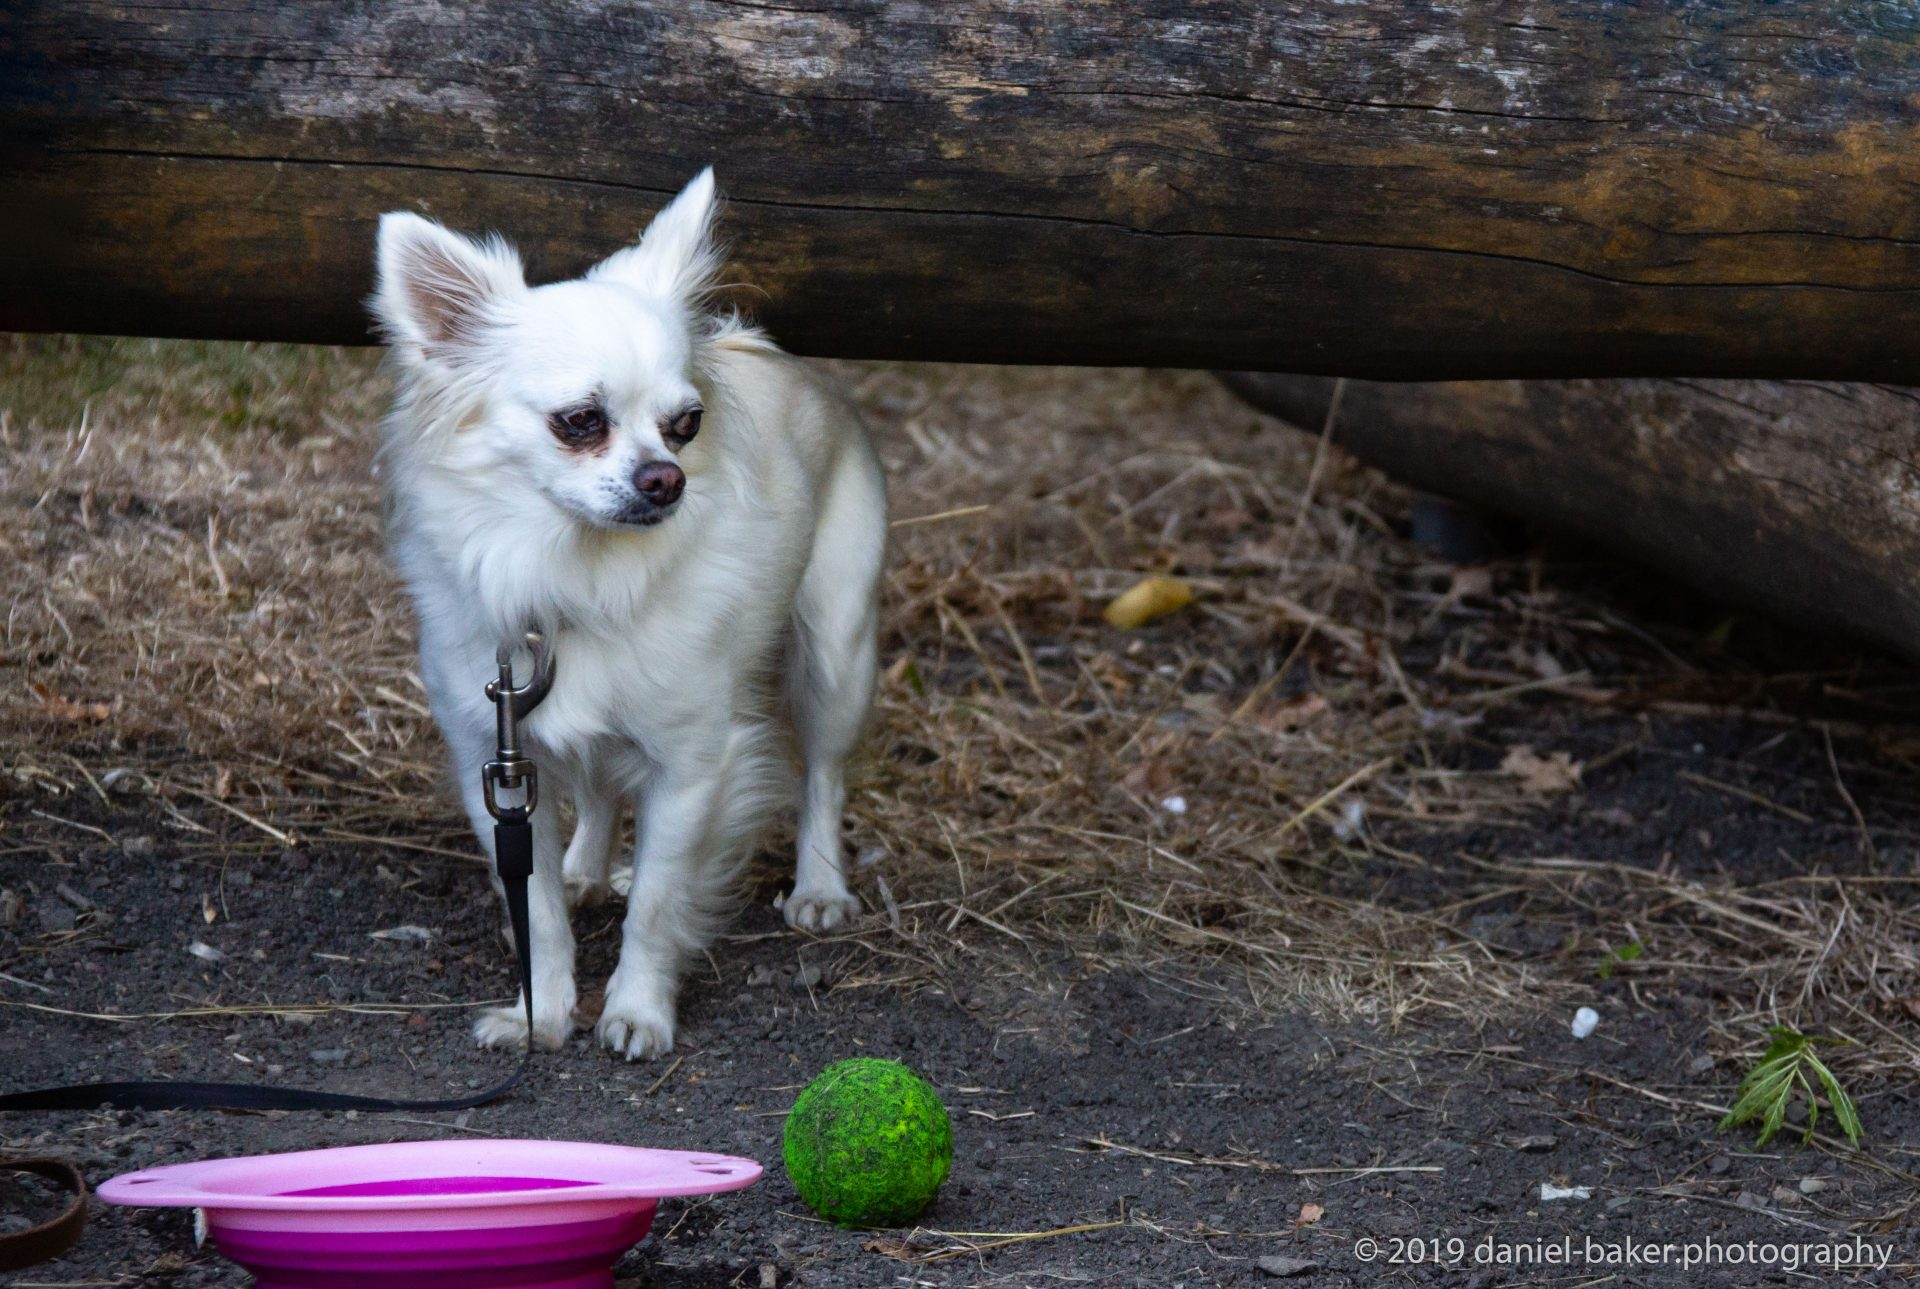 Peppa a white long haired chihuahua at Benhall park